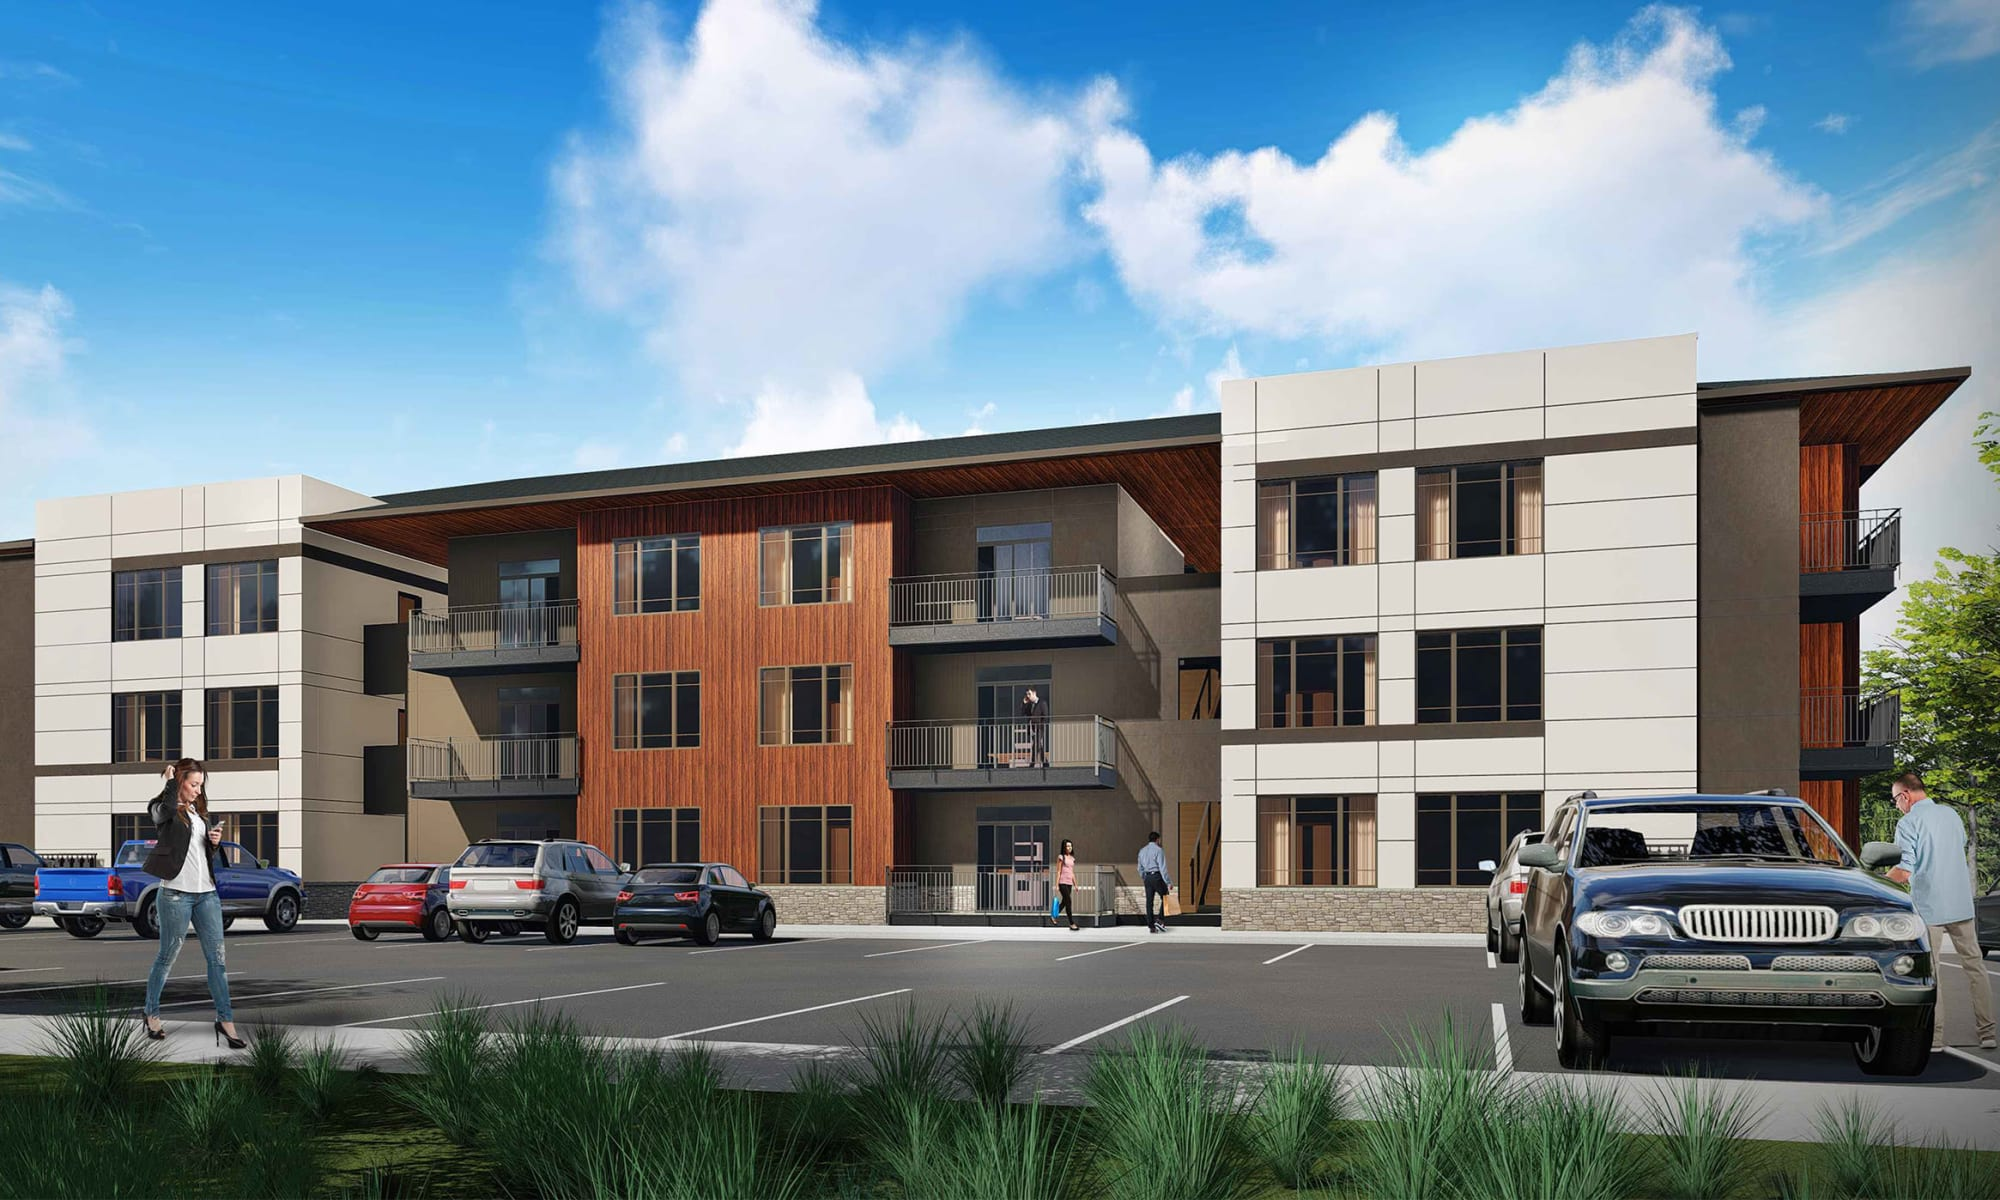 Rendering of our community at Uptown Ann Arbor in Ann Arbor, Michigan